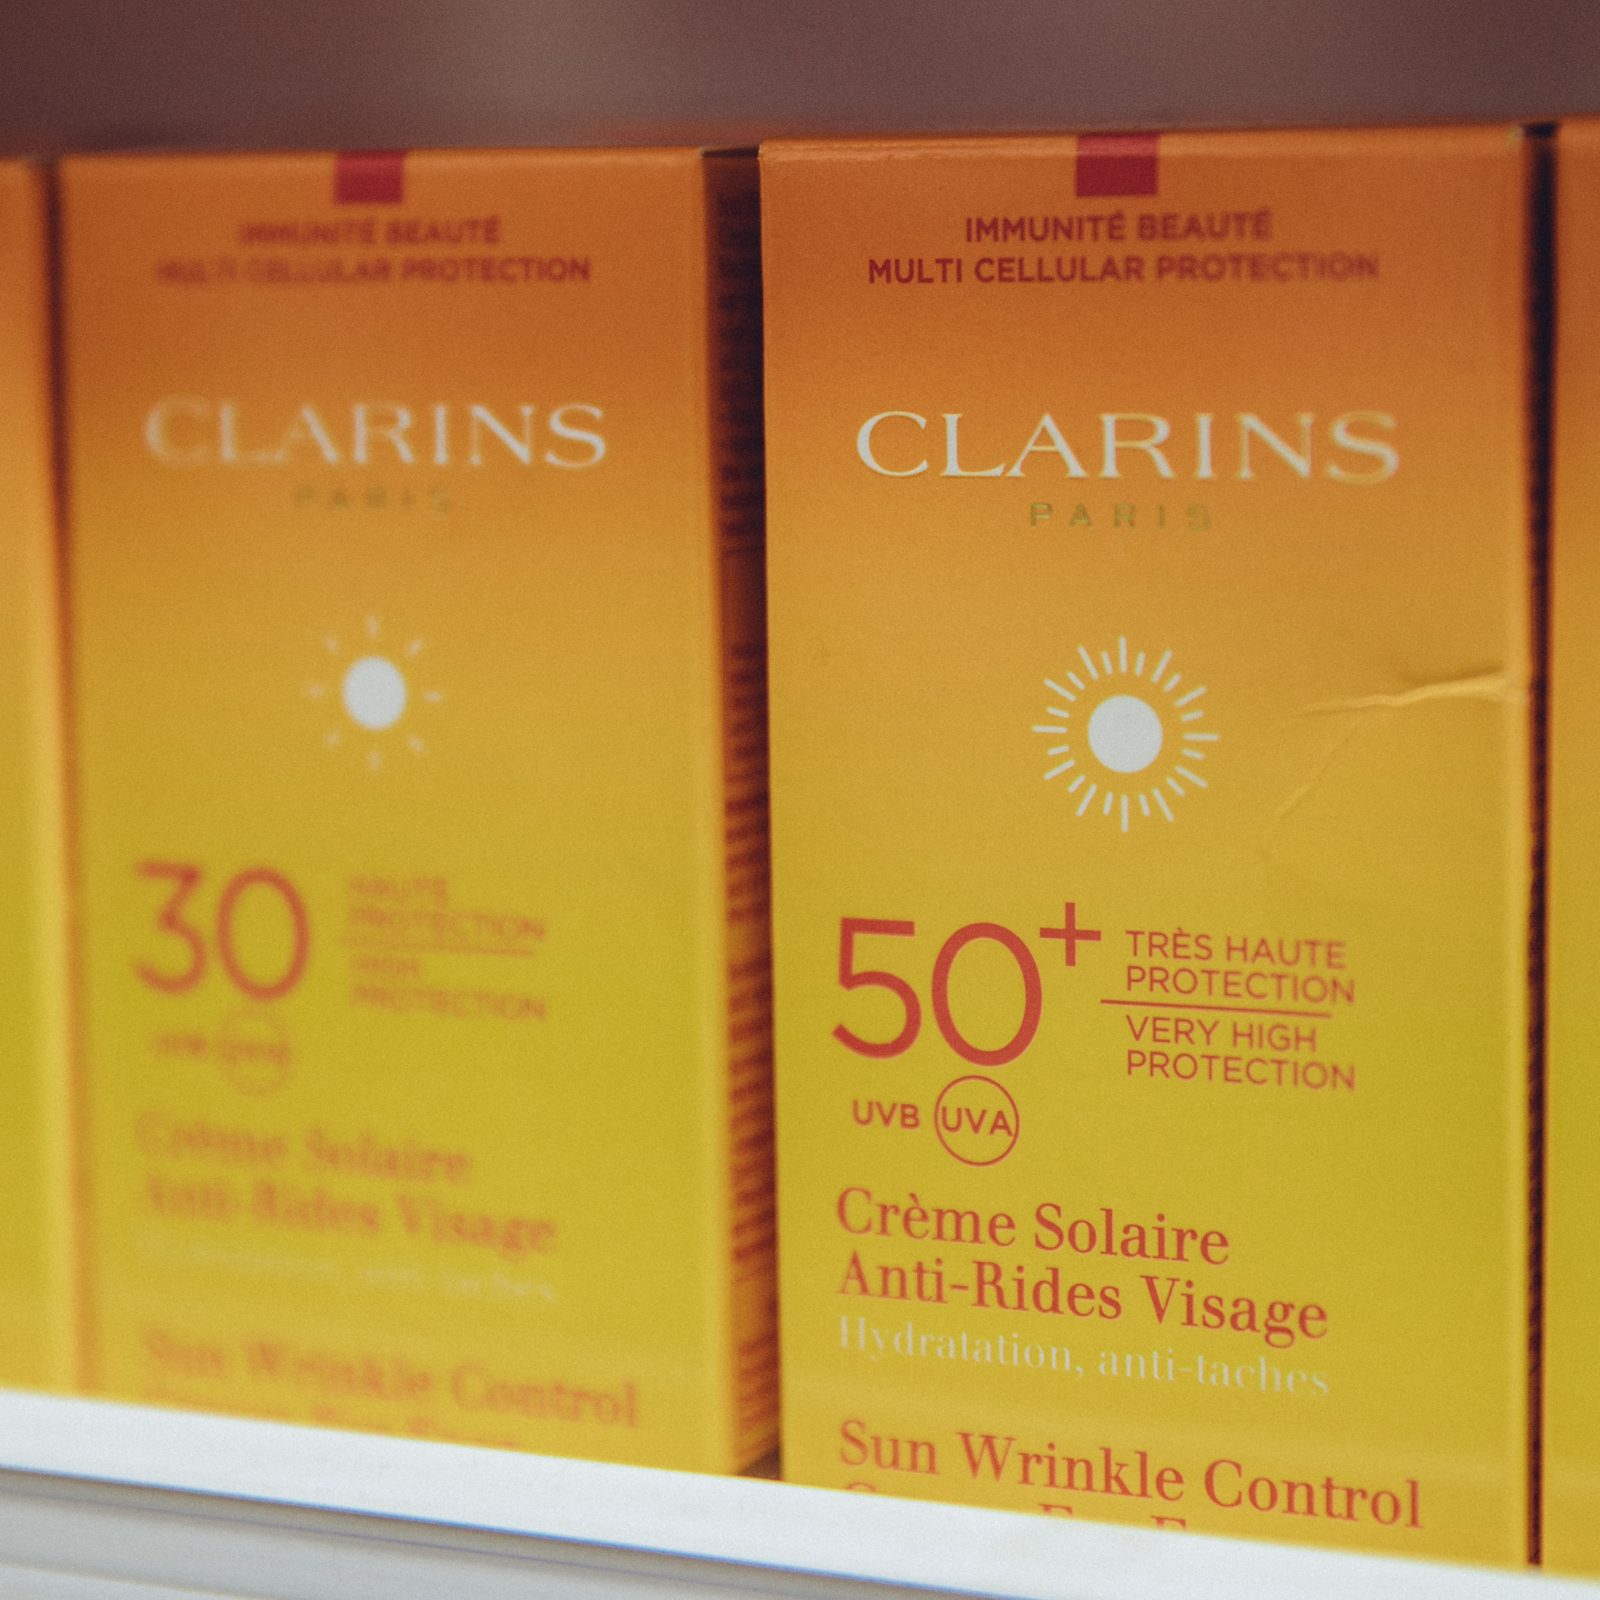 Shop Clarins at Beauty Outlet